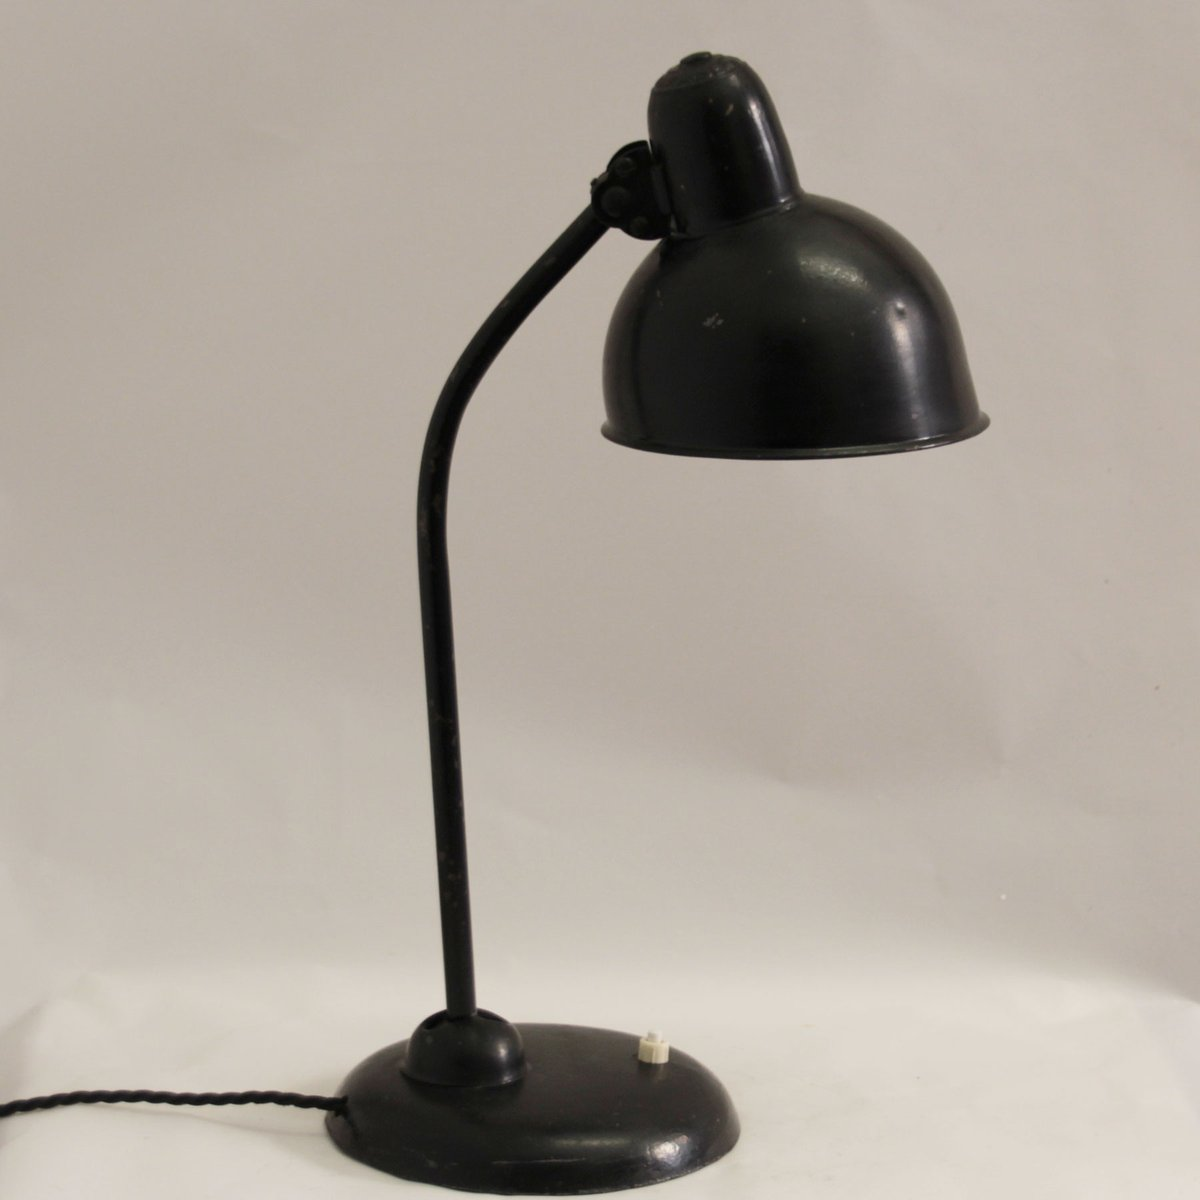 model 6551 bauhaus table lamp by christian dell for kaiser idell 1940s for sale at pamono. Black Bedroom Furniture Sets. Home Design Ideas